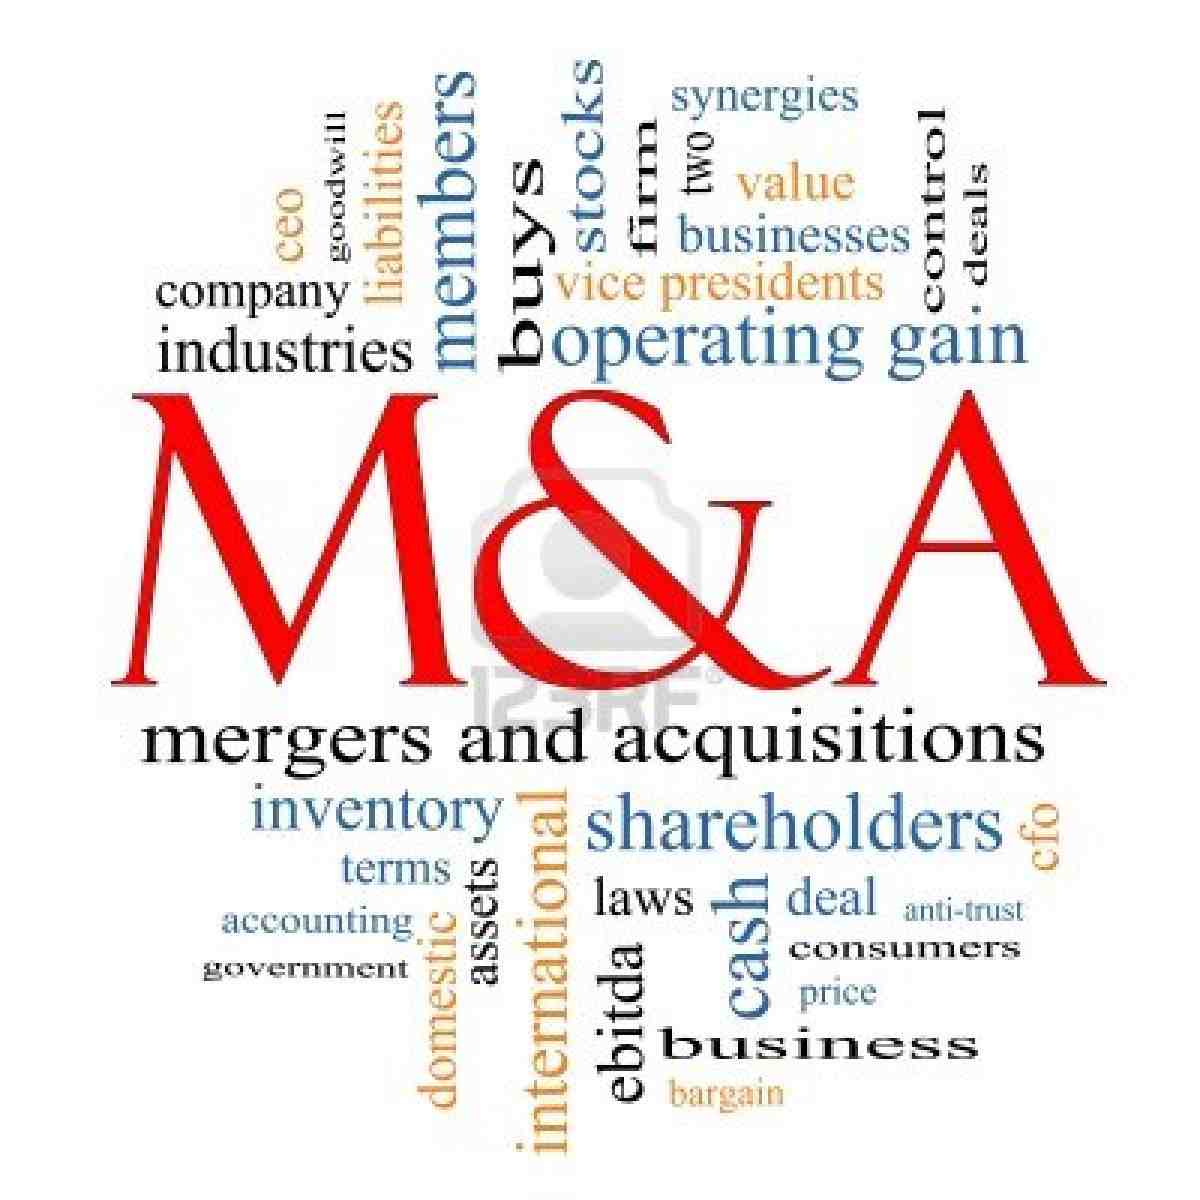 management accounting system integration in corporate mergers a case study The key difference between cm and am is that the former does not manage the financial accounting  a configuration management system  case study funded by the.